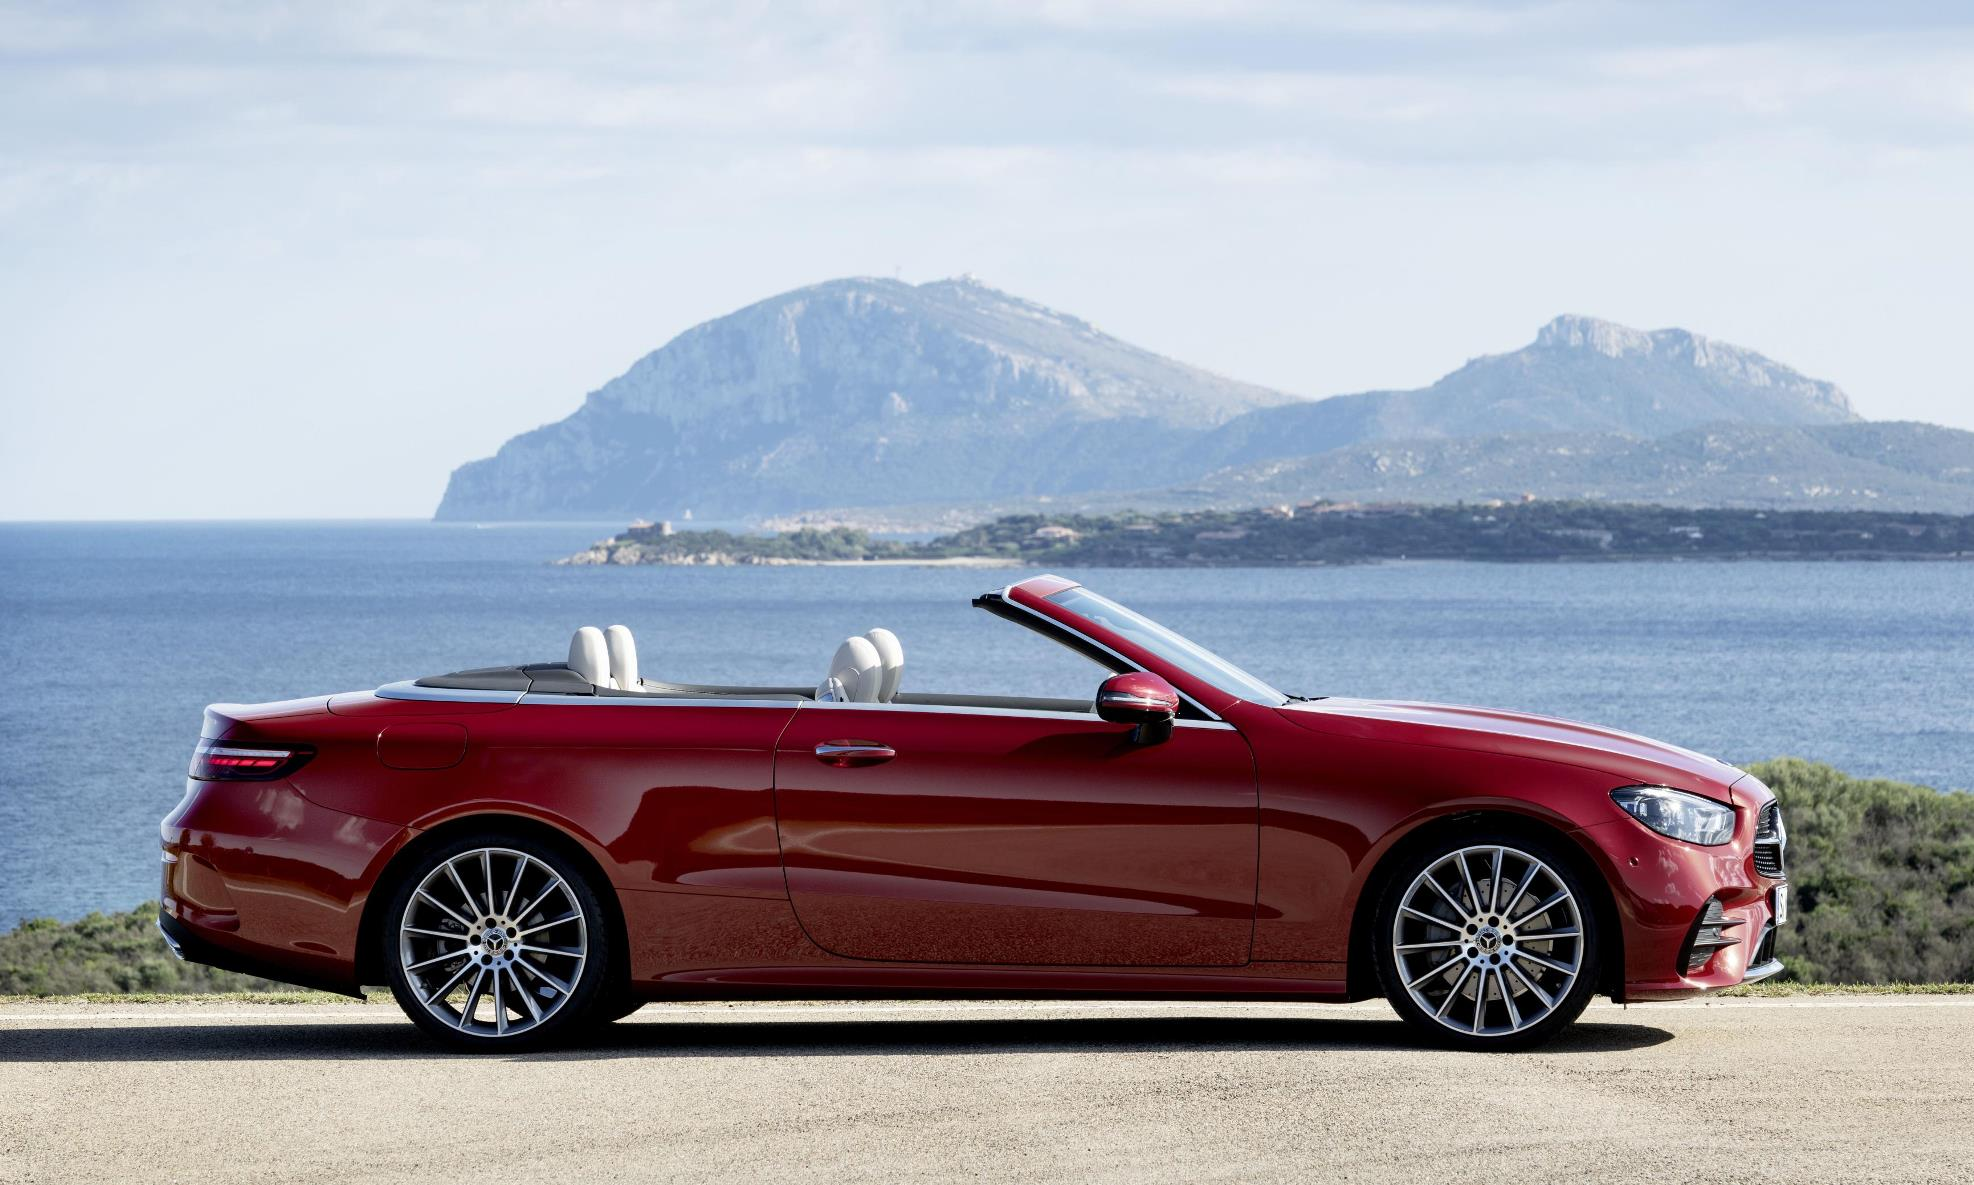 Facelifted Mercedes-Benz E-Class Cabrio profile